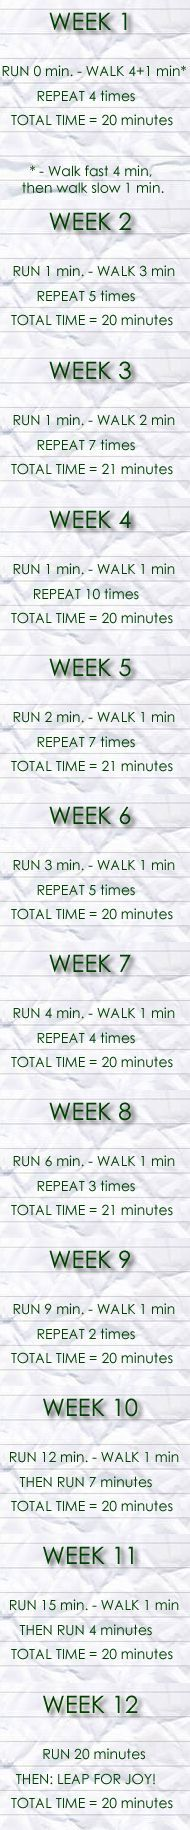 Beginner Running Training Program.  You know, to get you in to shape!